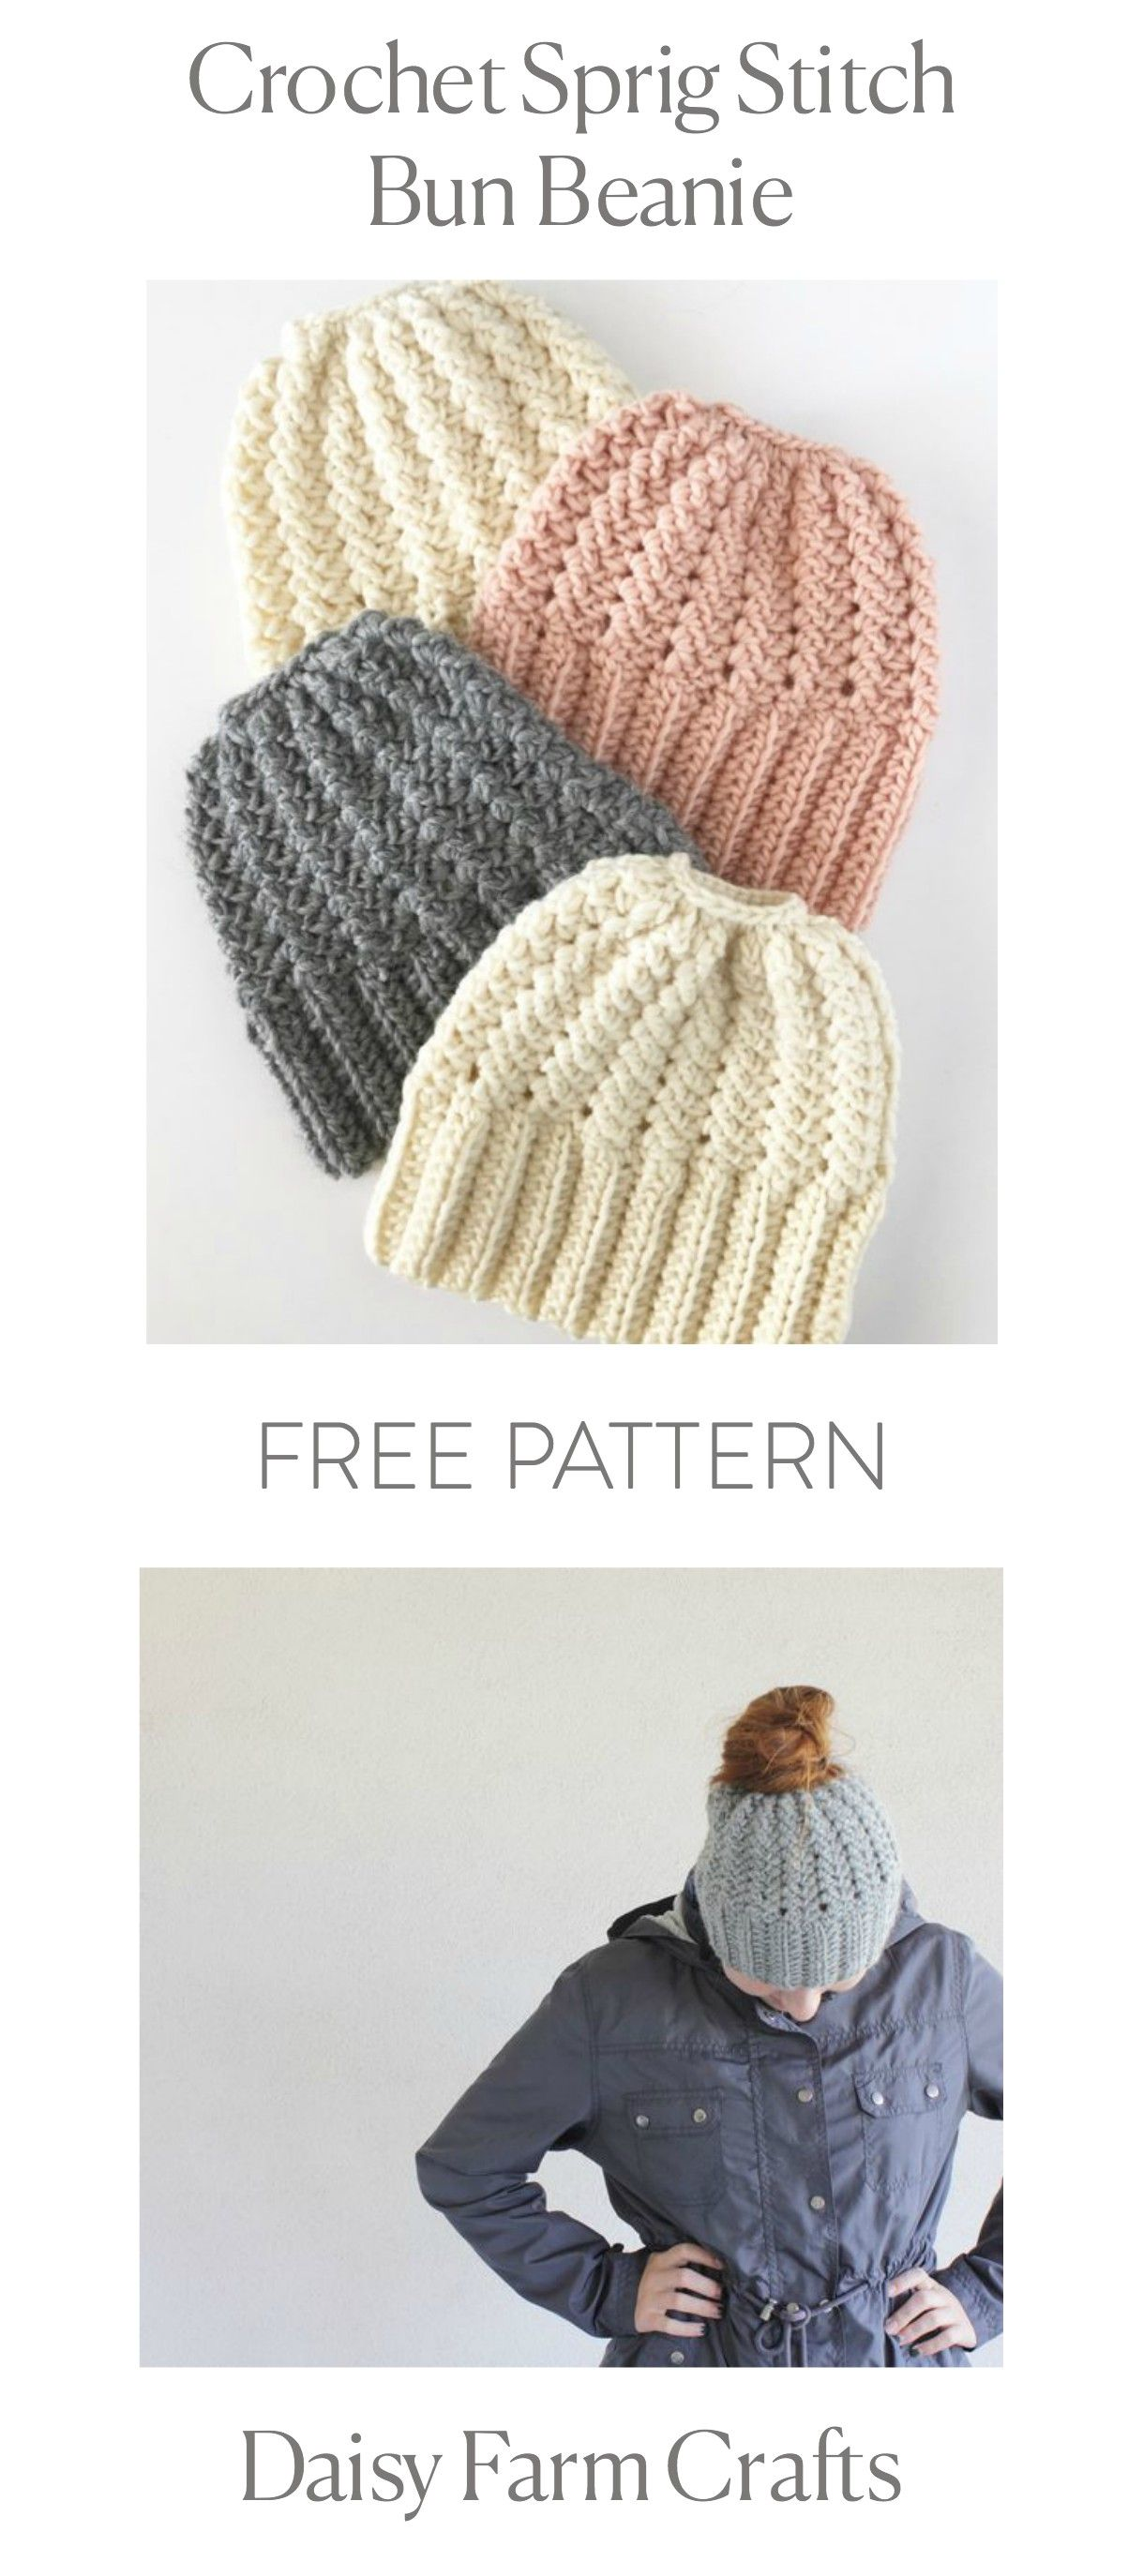 FREE PATTERN - Crochet Sprig Stitch Bun Beanie | Crochet stitches ...